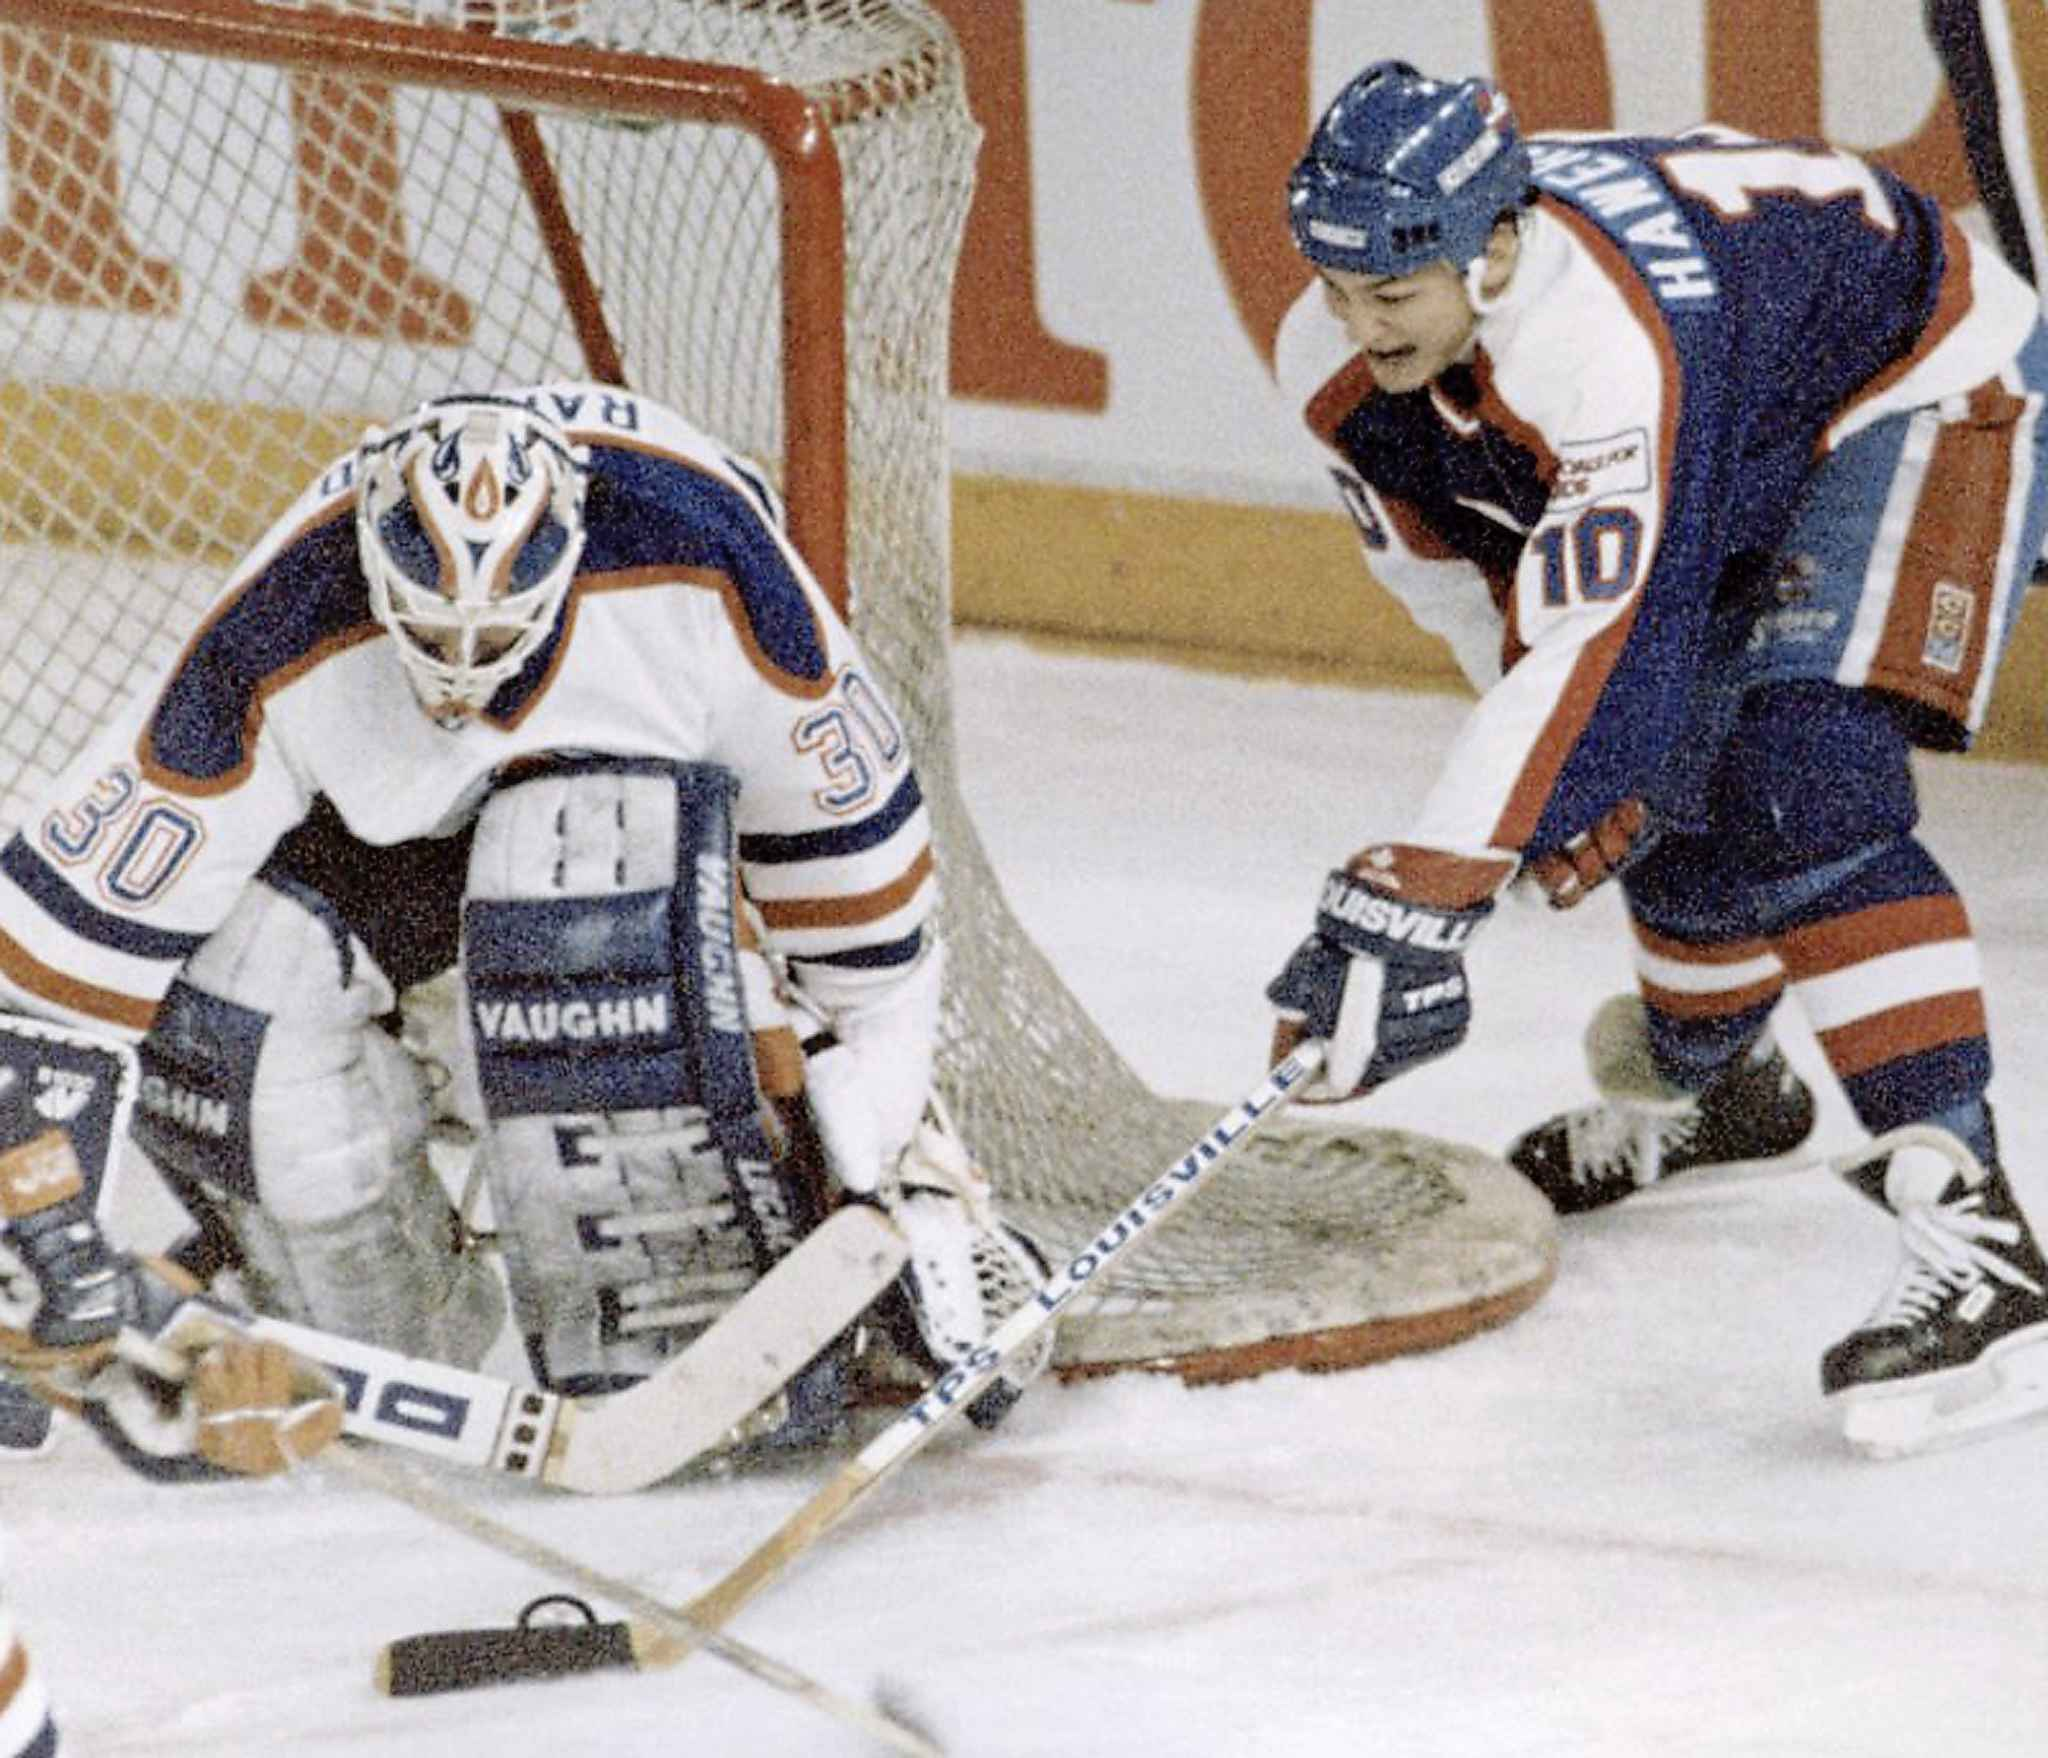 Hawerchuk tries to get the puck past Bill Ranford during a playoff game in Edmonton on April 4, 1990. (Ray Giguere / The Canadian Press files)